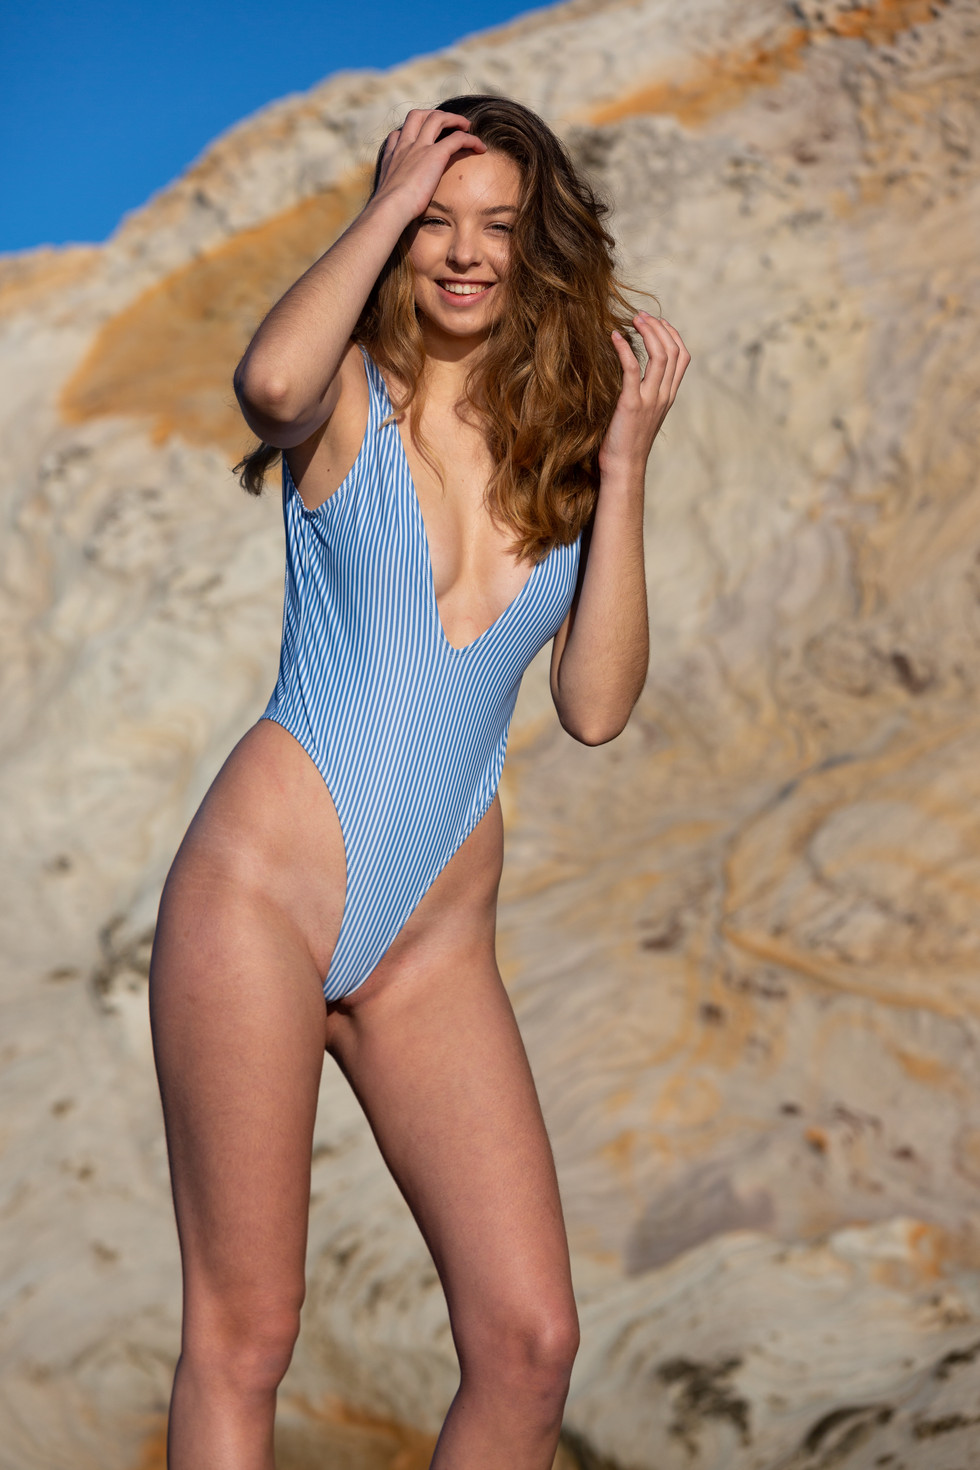 Charlotte_by_CoogeePhotography-1064148.j